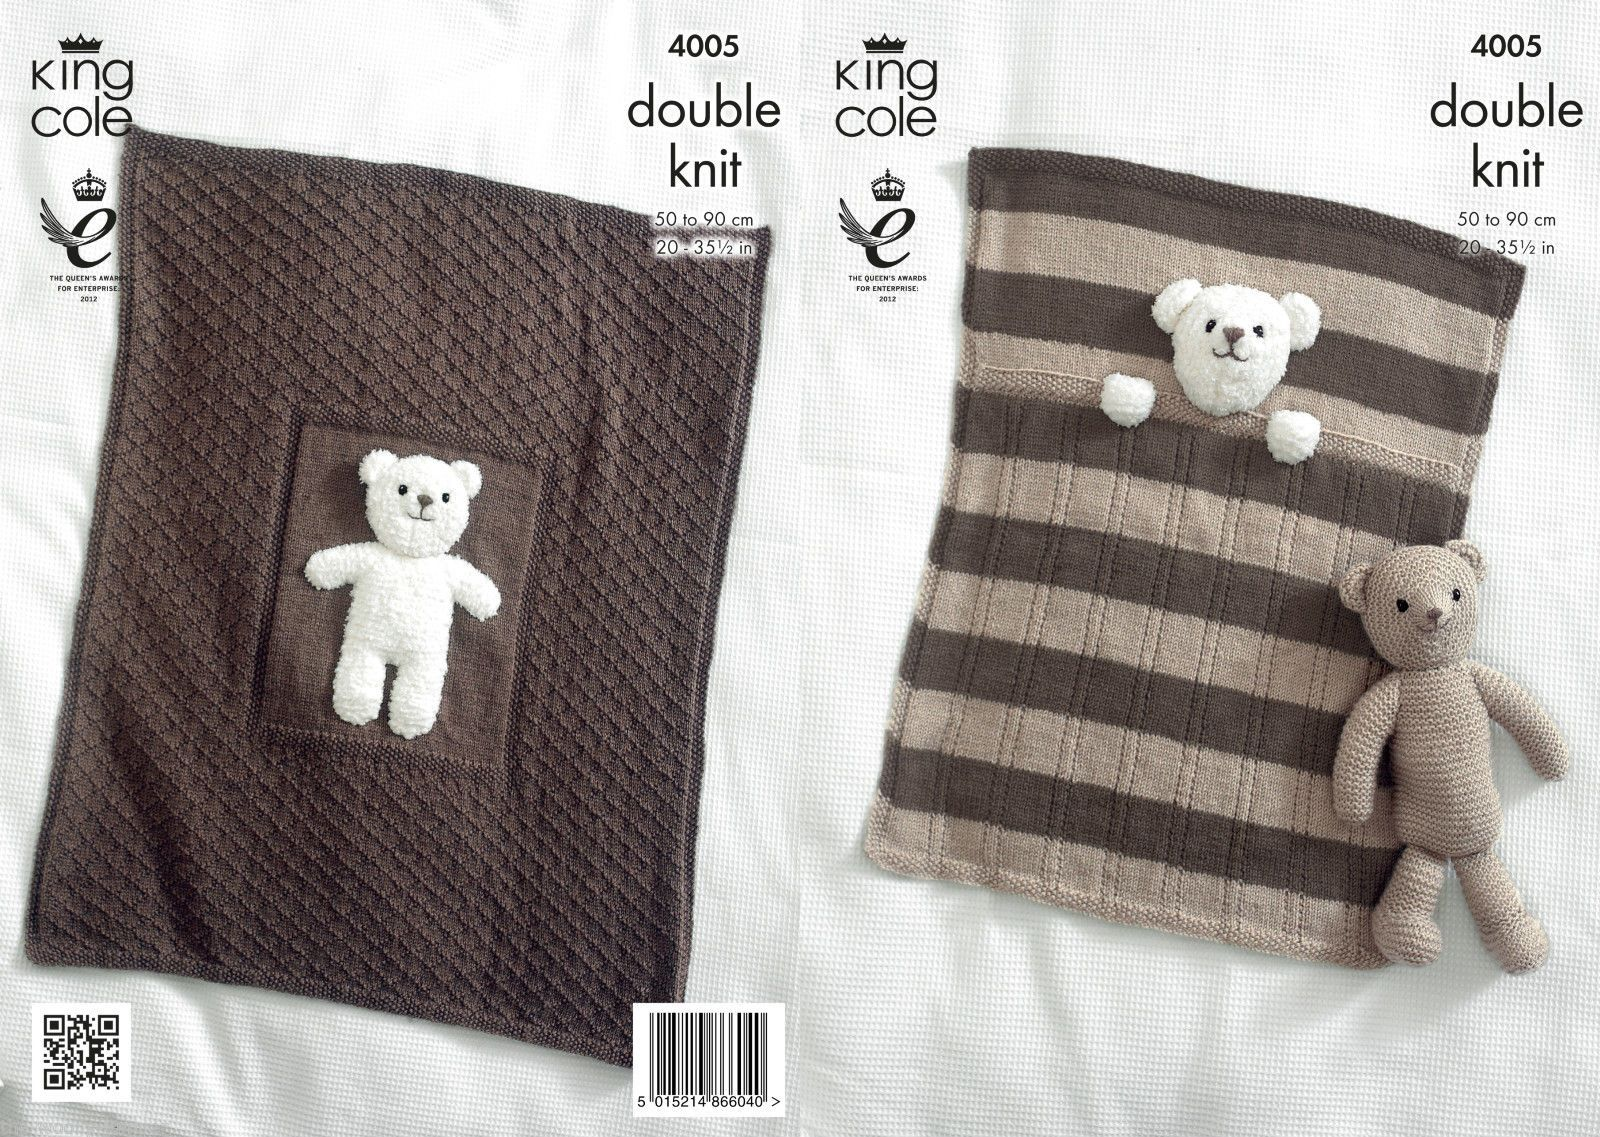 4005 - KING COLE COMFORT DK COT & PRAM BLANKET & TEDDY BEAR TOY ...